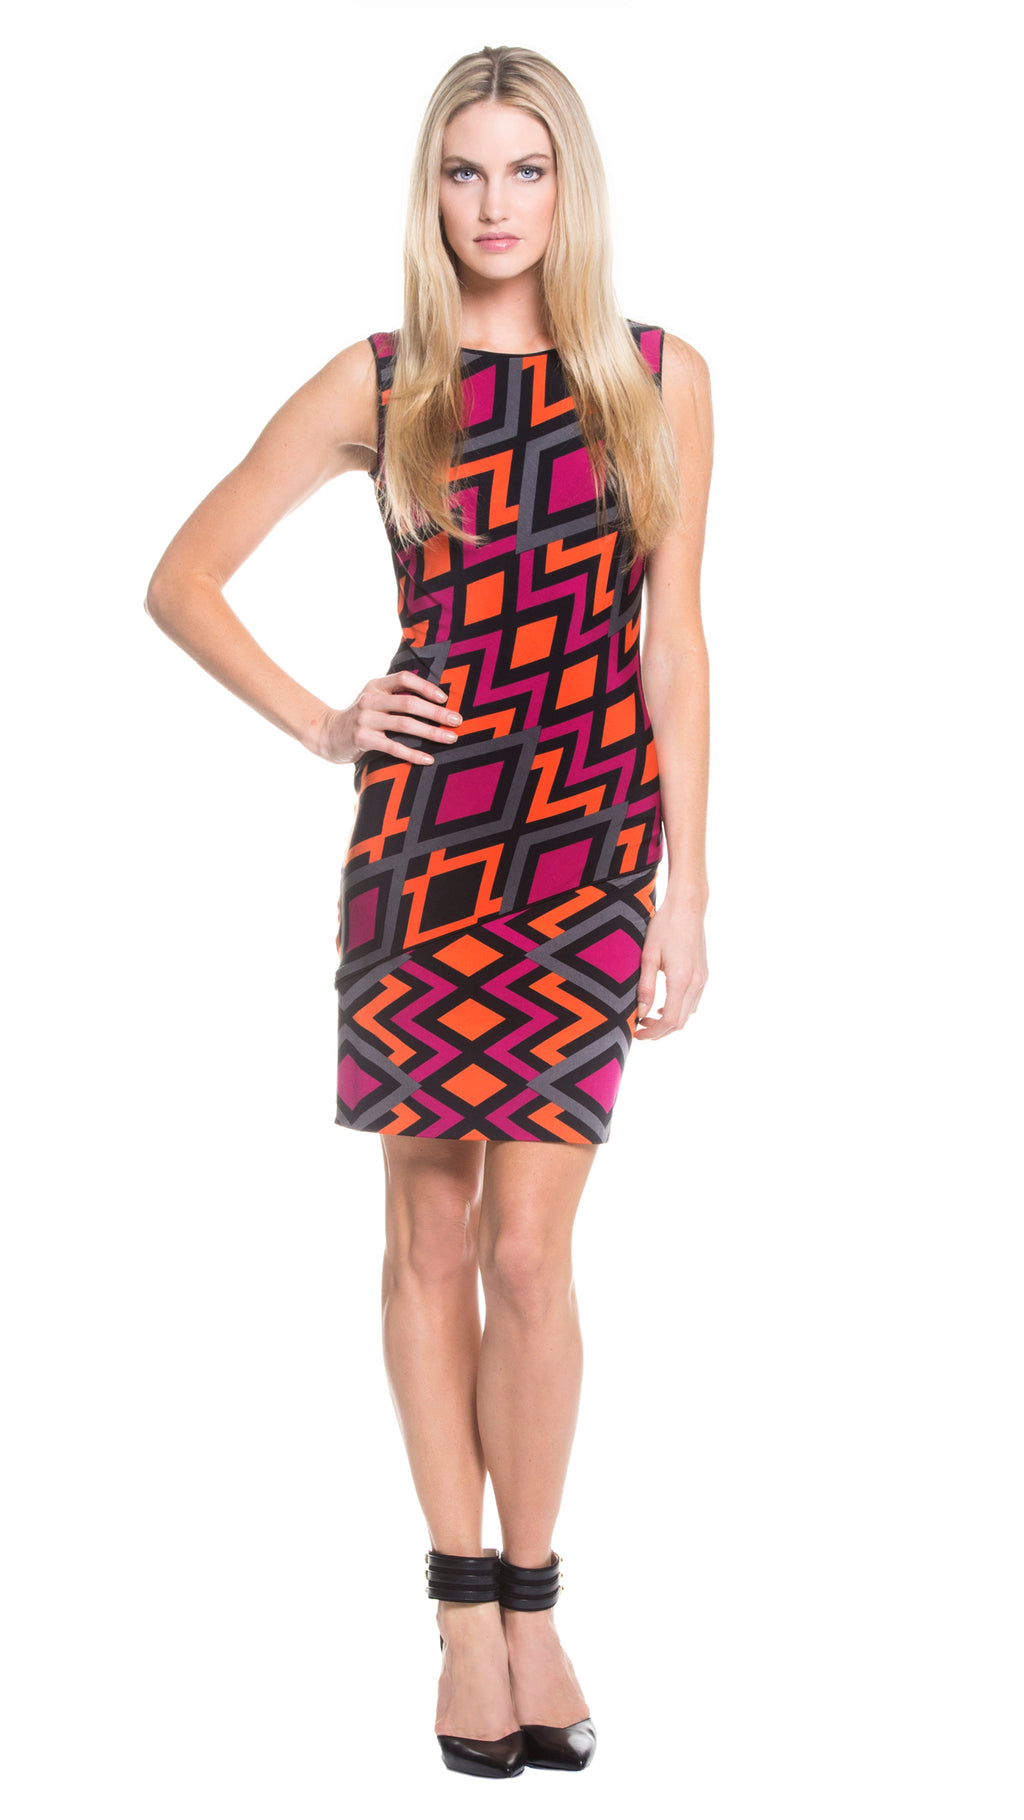 Max Asymmetric Dress